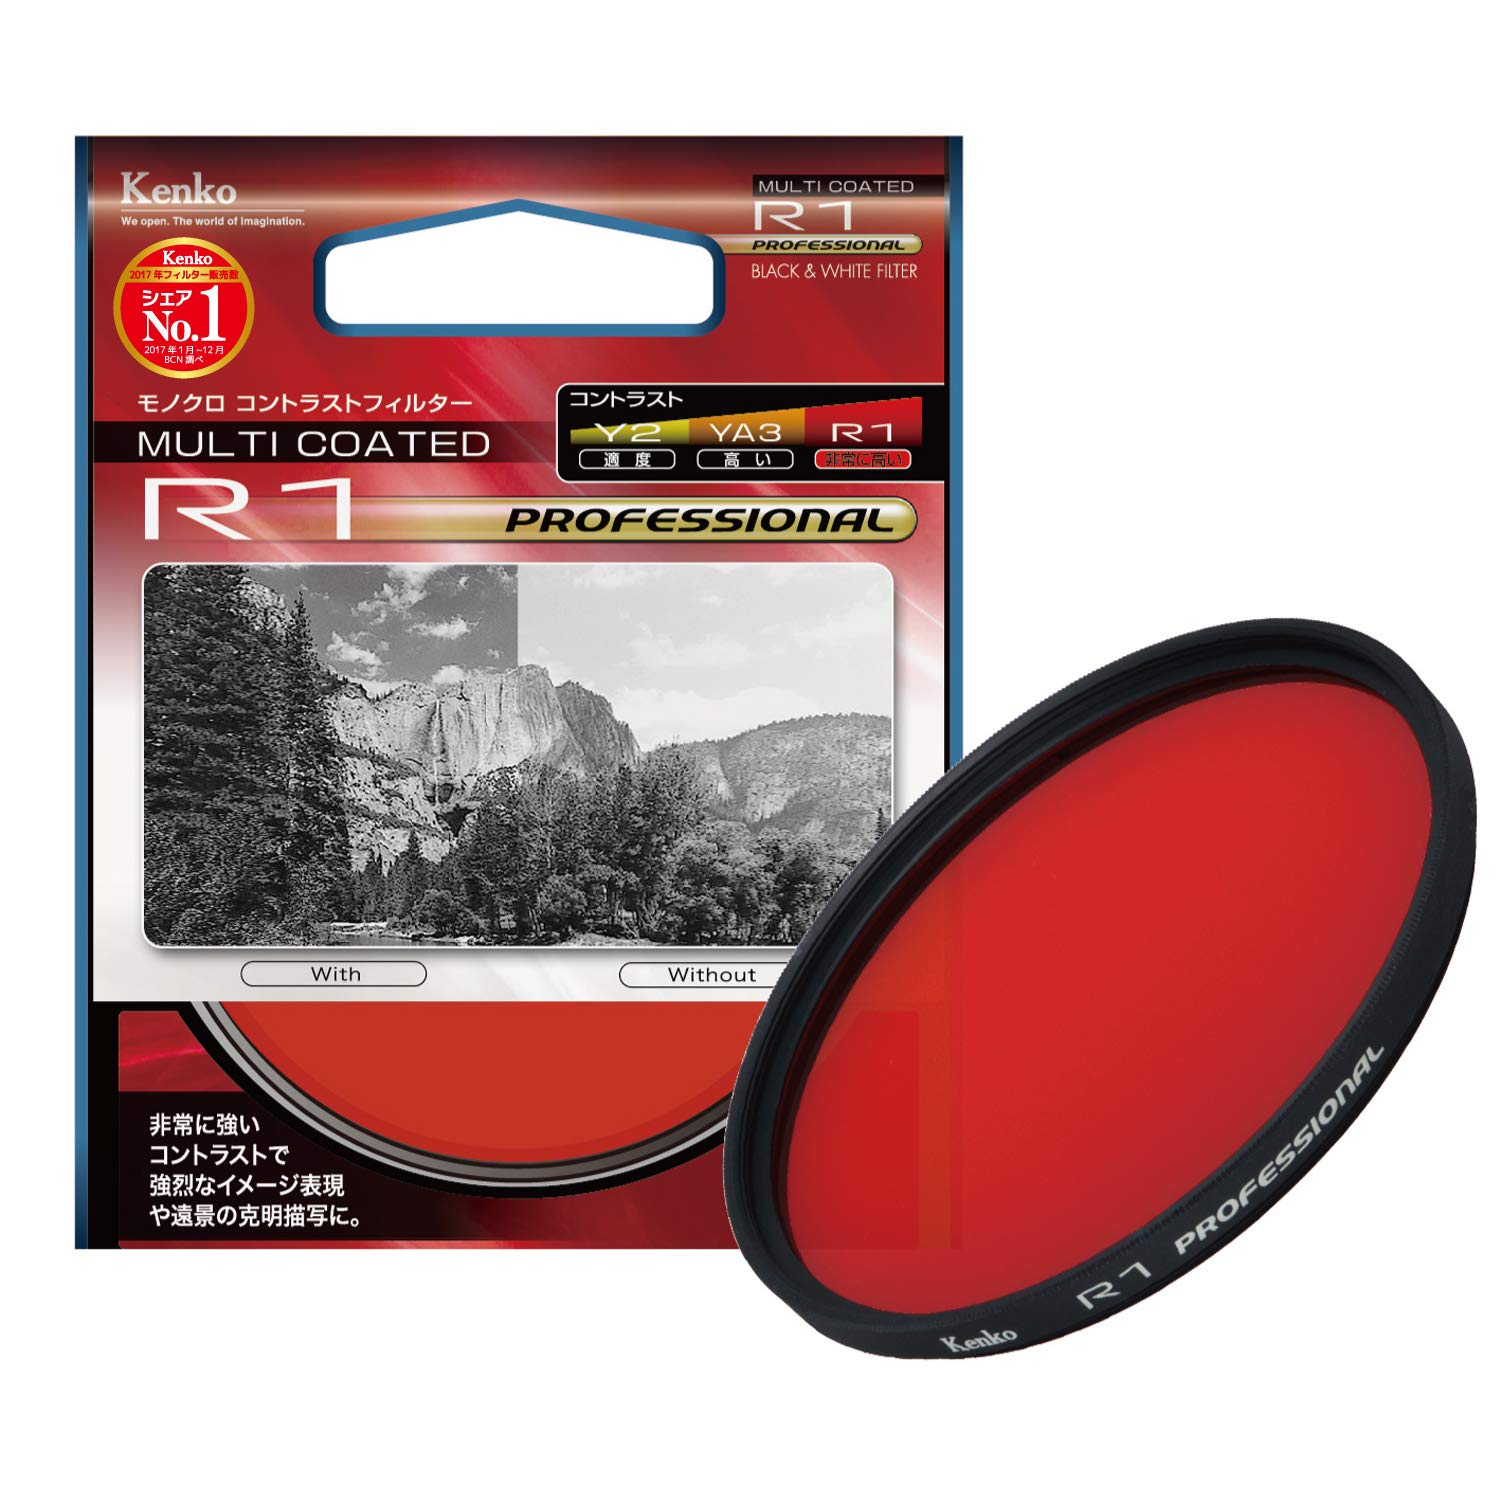 Kenko 77mm YA3 Professional Multi-Coated Camera Lens Filters Kenko Tokina USA Inc. 177365